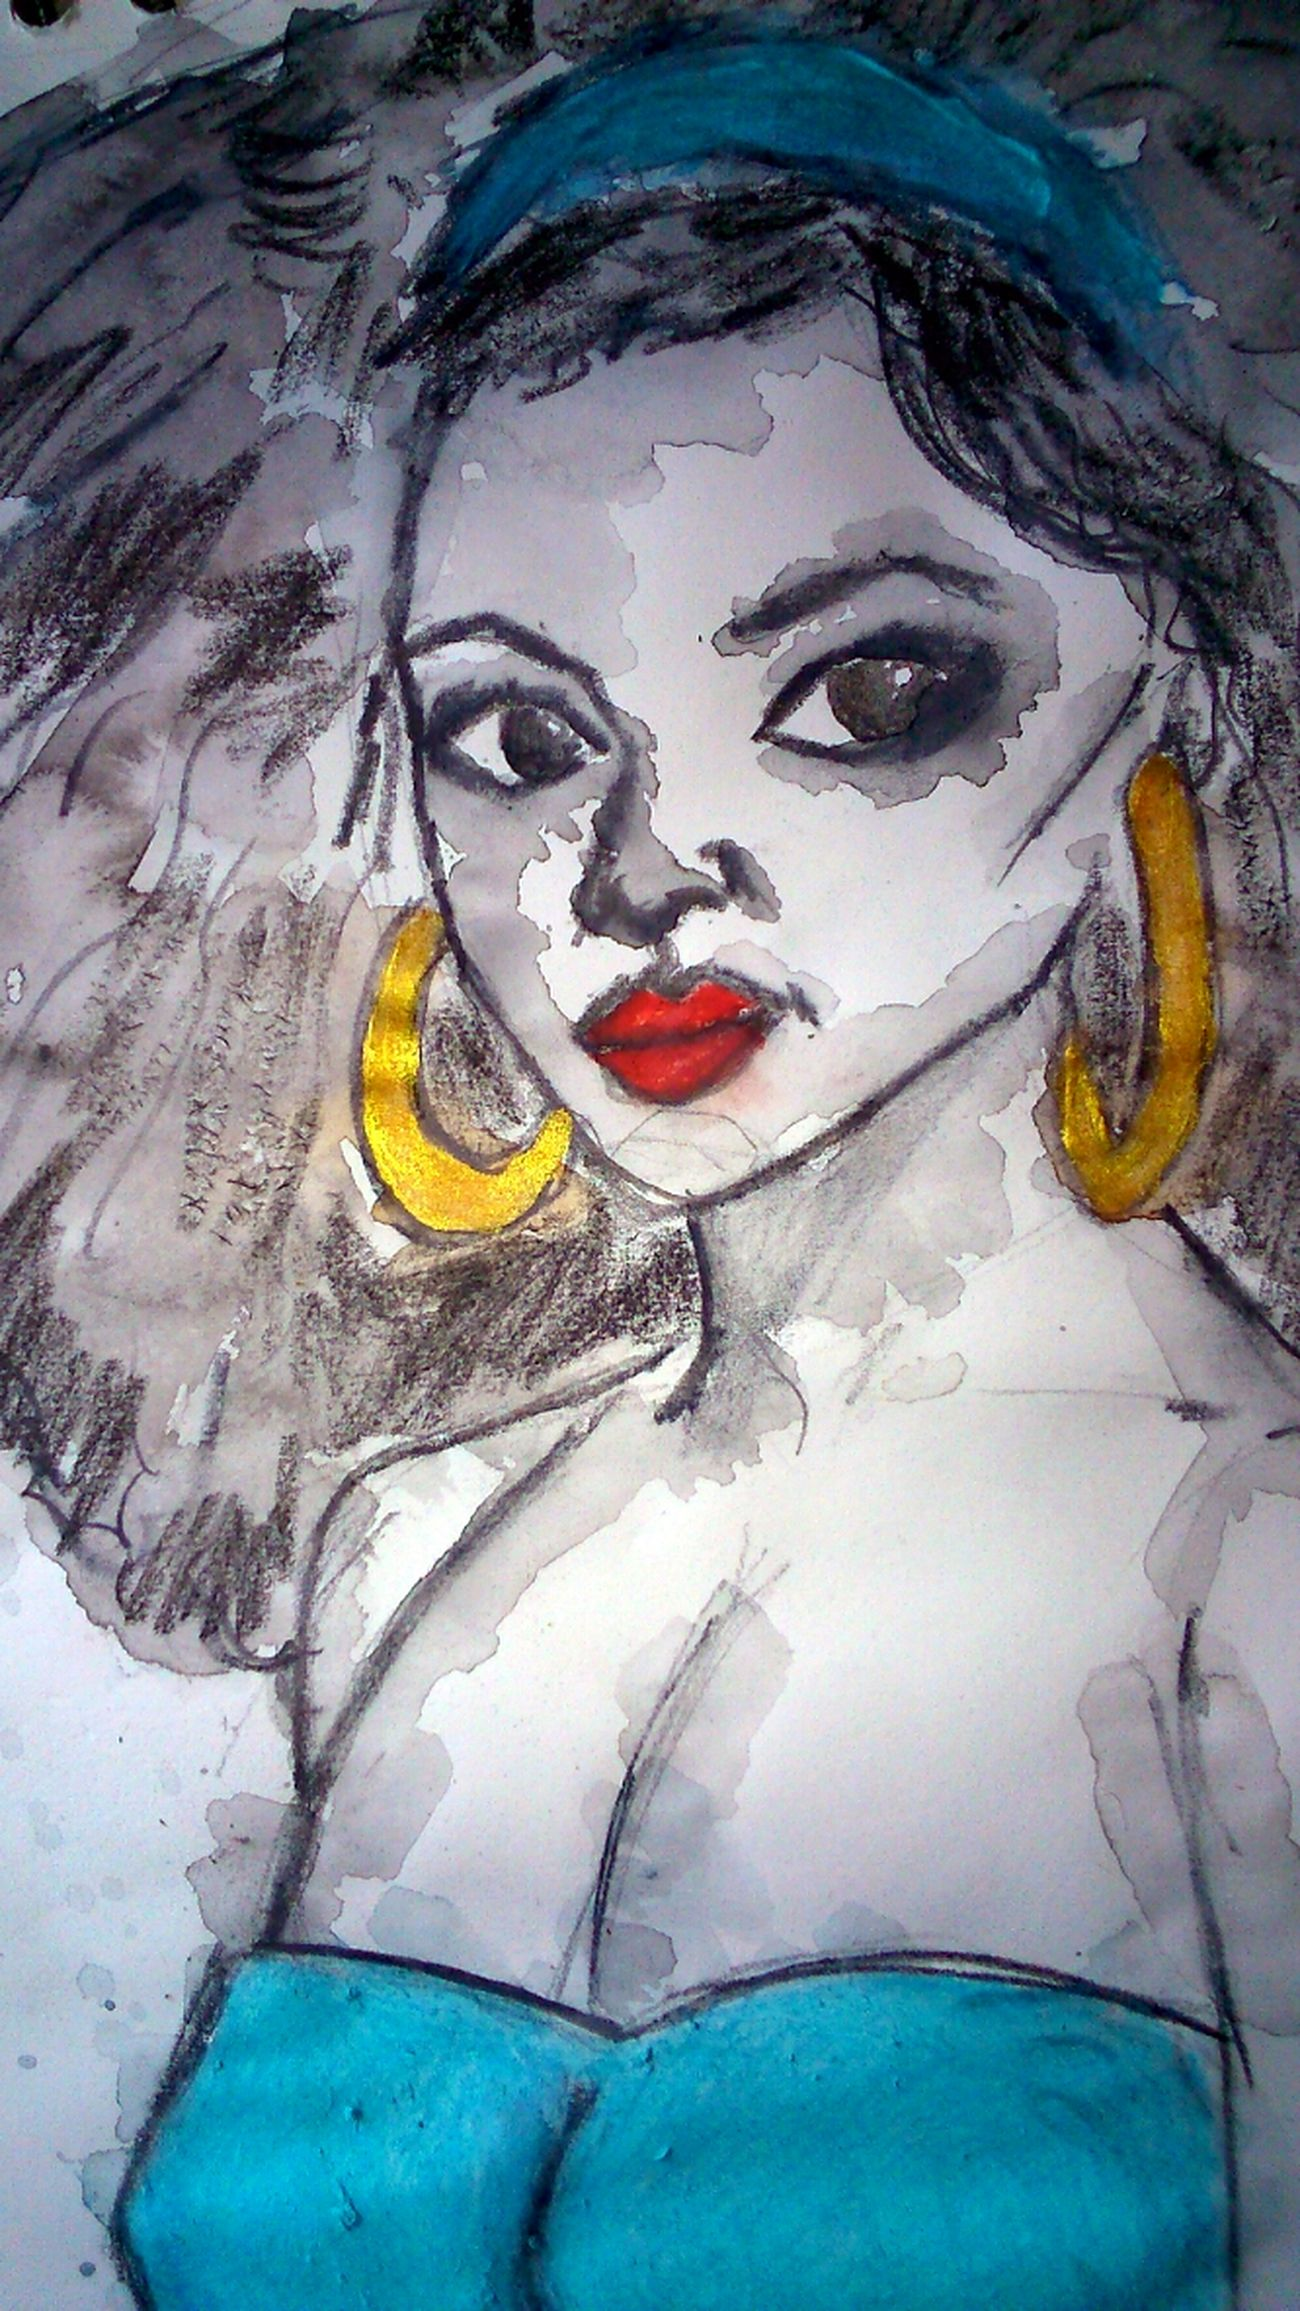 One Woman Only Close-up Beauty One Person Drawing - Activity Drawing - Art Product Art And Craft Textured  Human Representation Multi Colored Human Body Part Watercolor Painting Fragility Freshness Artistic Young Adult